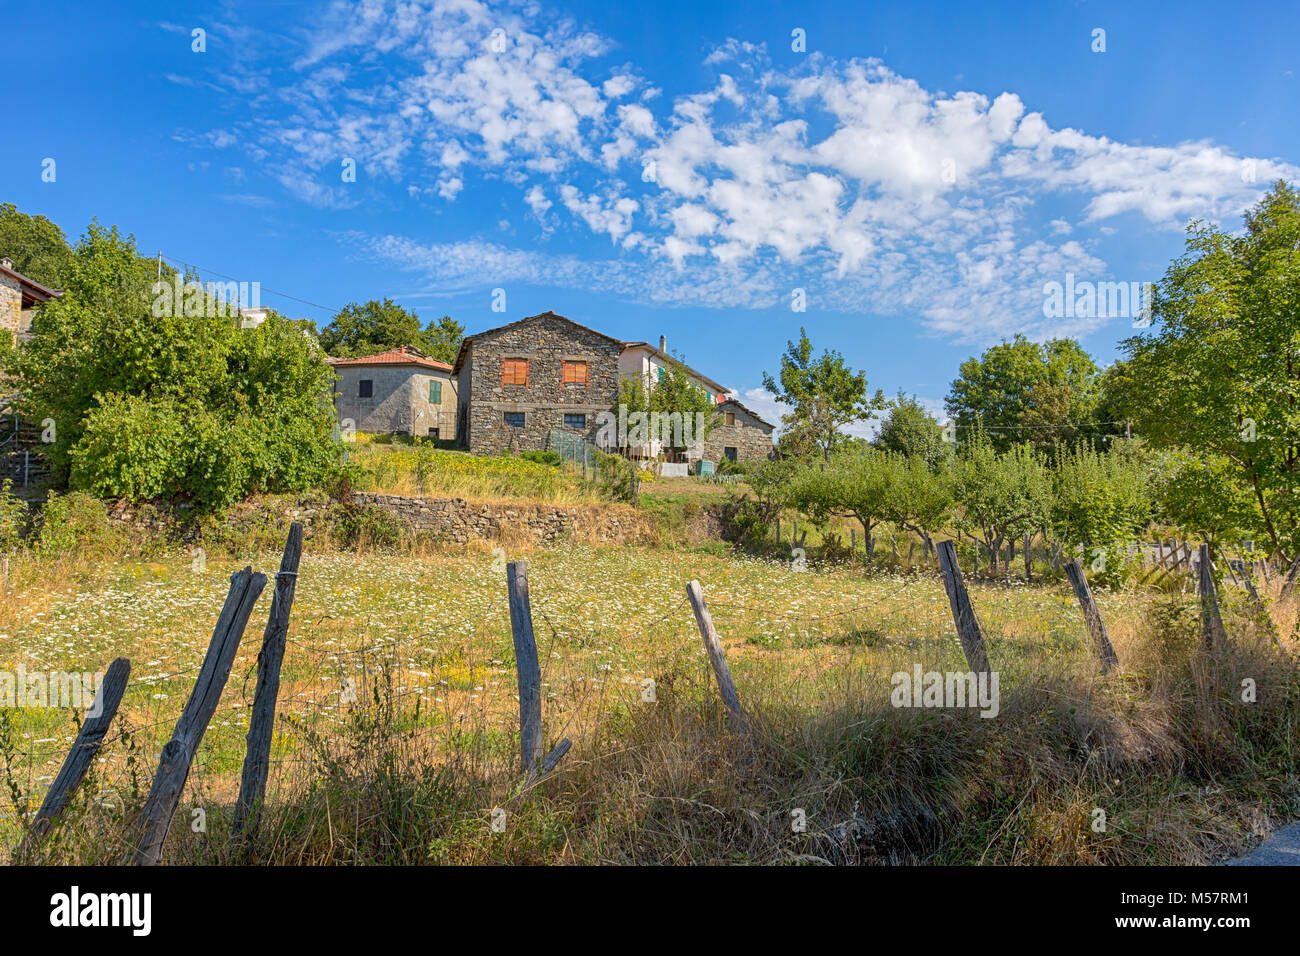 Group of stone country houses in a meadow full of flowers and trees. - Stock Image